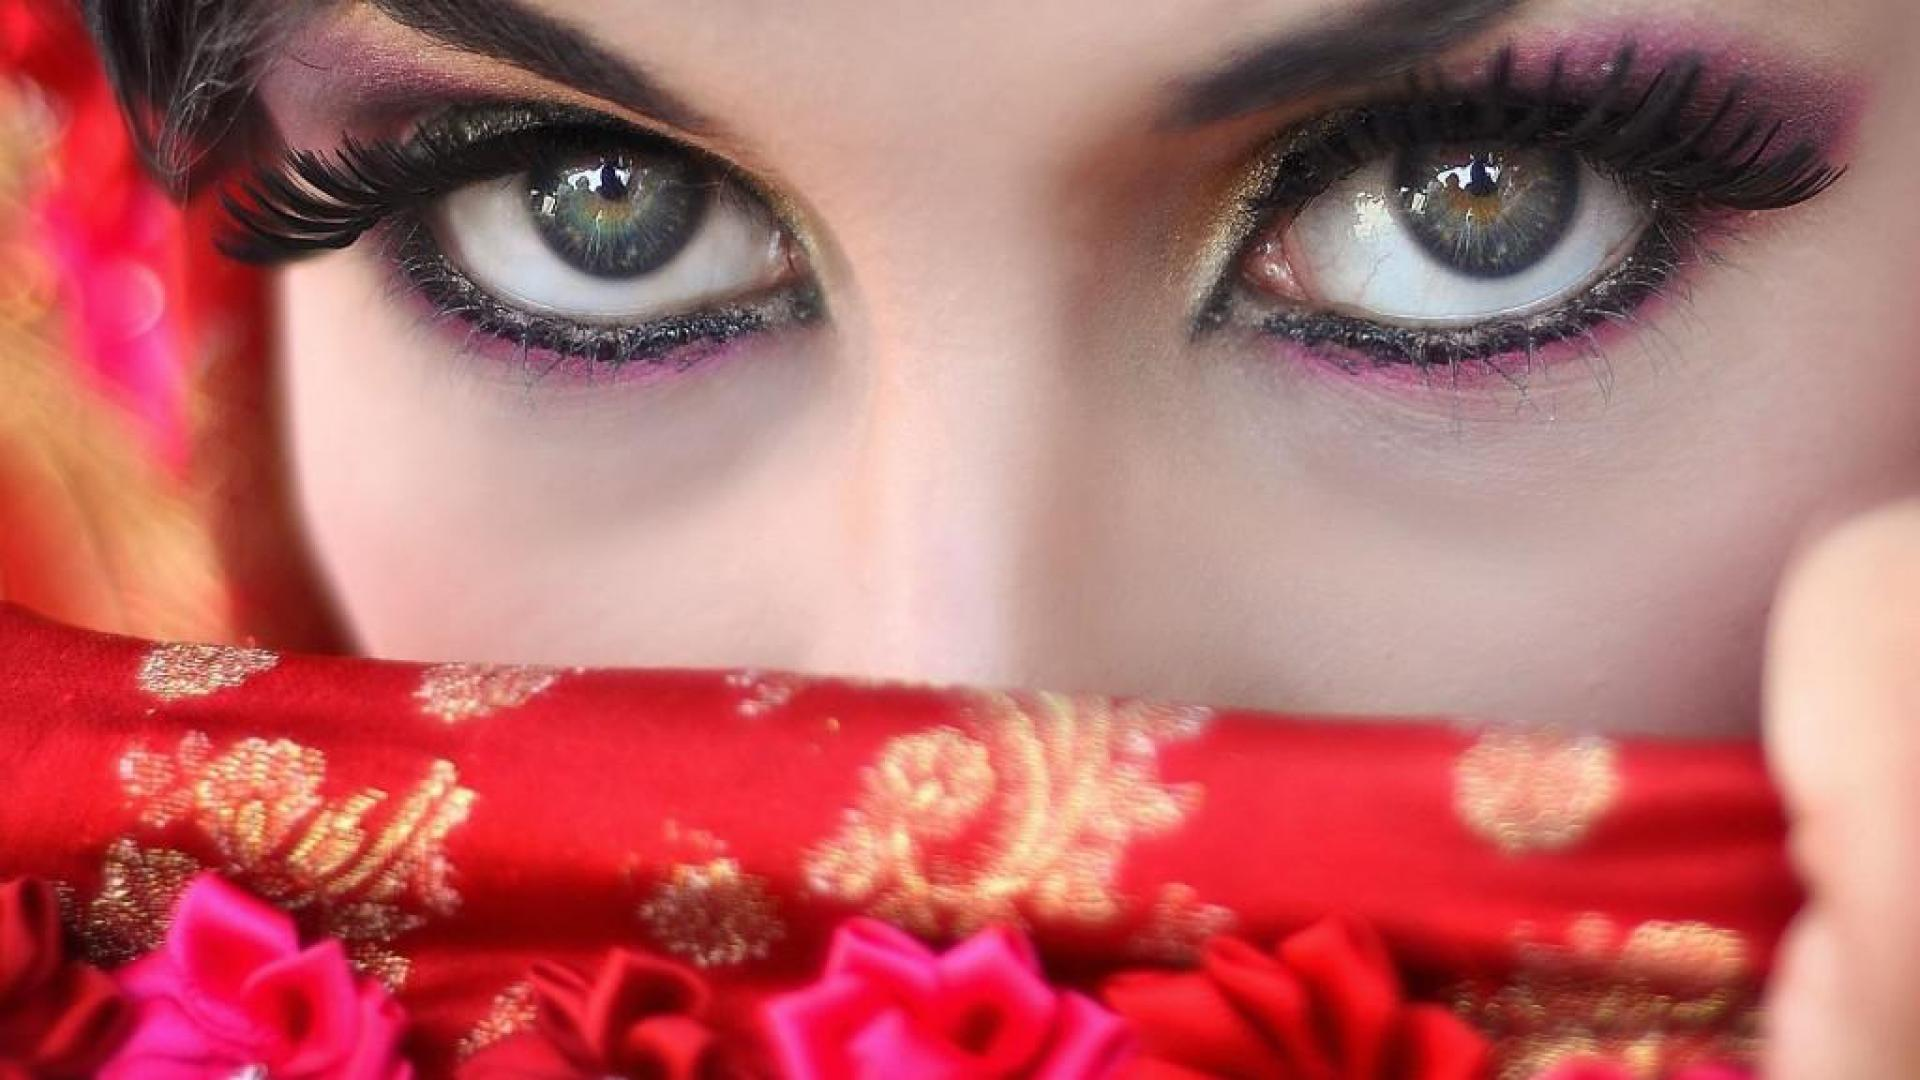 Eyes Wallpapers HD Pictures One HD Wallpaper Pictures Backgrounds 1920x1080